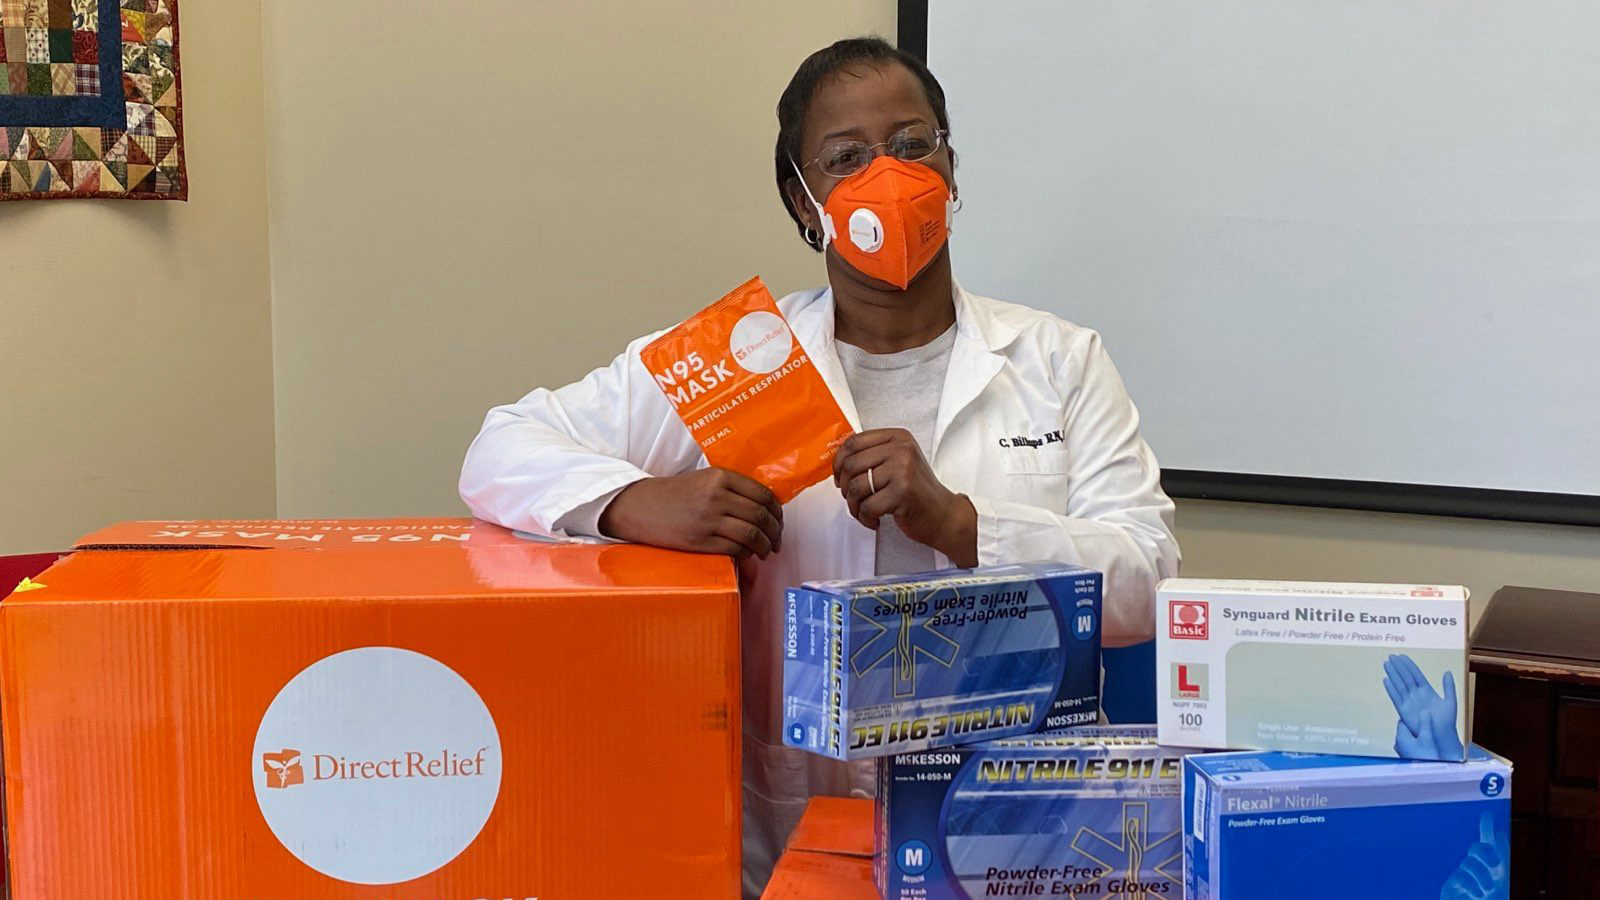 Protective gear for health workers arrives at Gloucester Matthews Care Clinic in Gloucester, Virginia in March, 2020. The shipment included N95 masks, gloves, gowns and other protective gear requested to prevent the spread of coronavirus. (Courtesy photo)